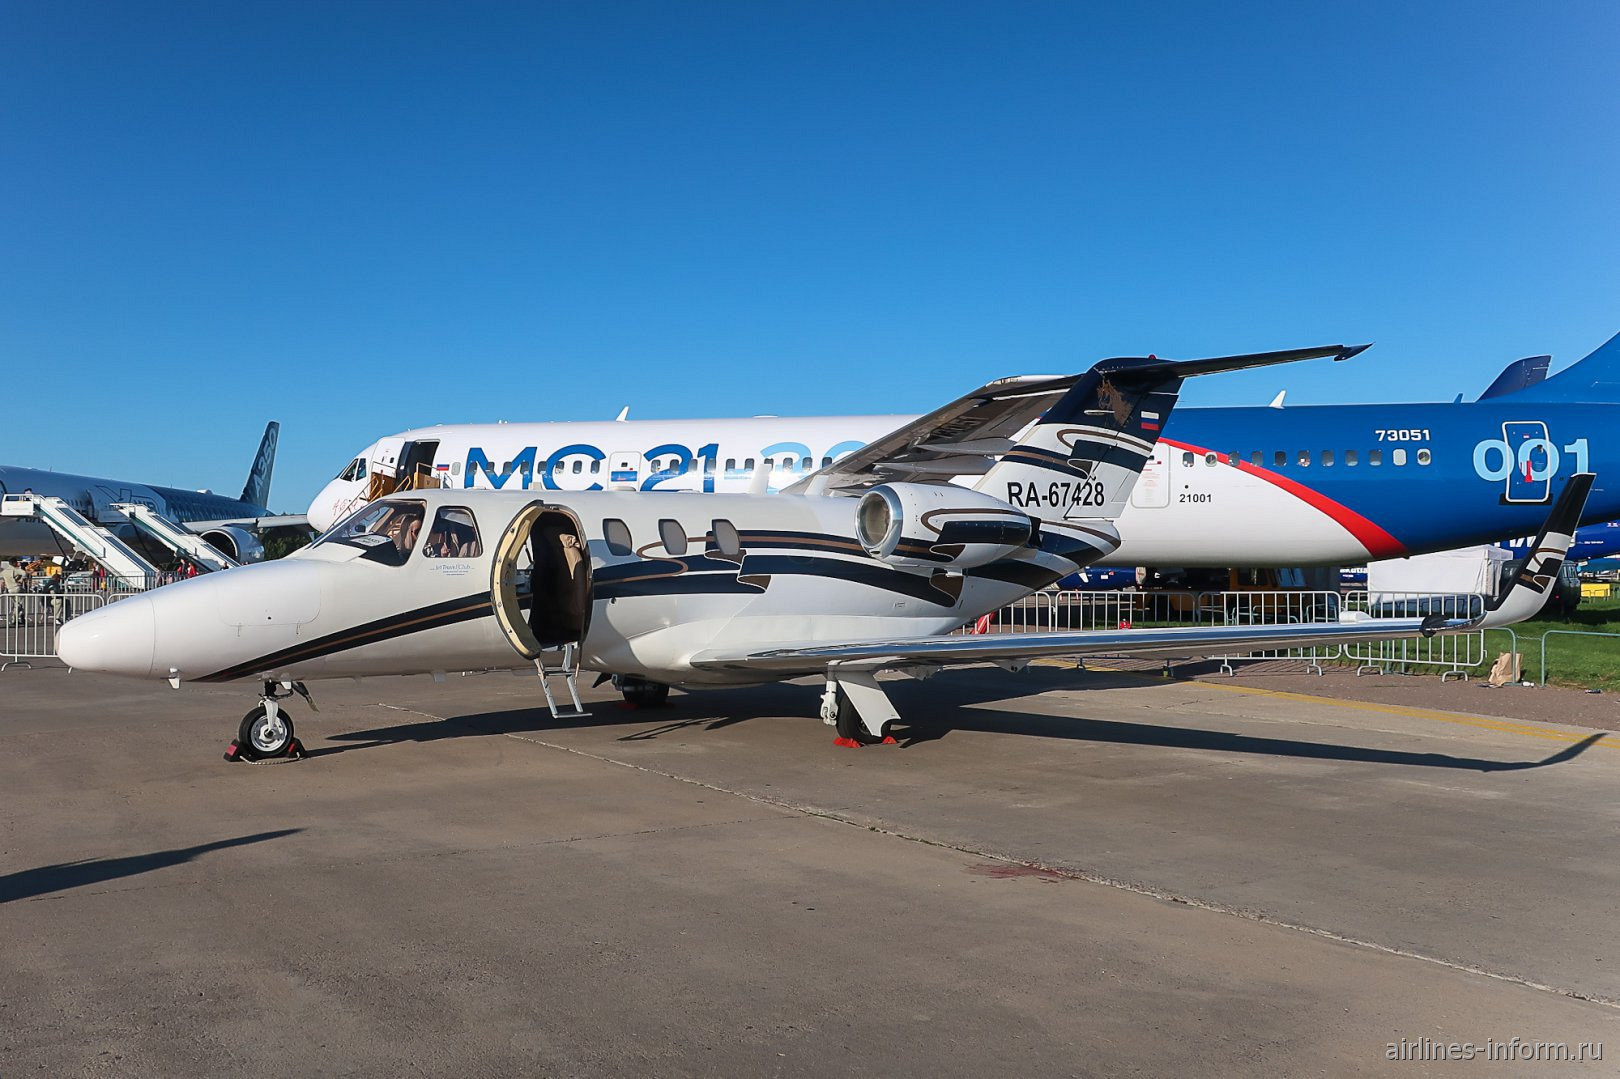 Бизнес-джет Cessna 525 Citation на авиасалоне МАКС-2019